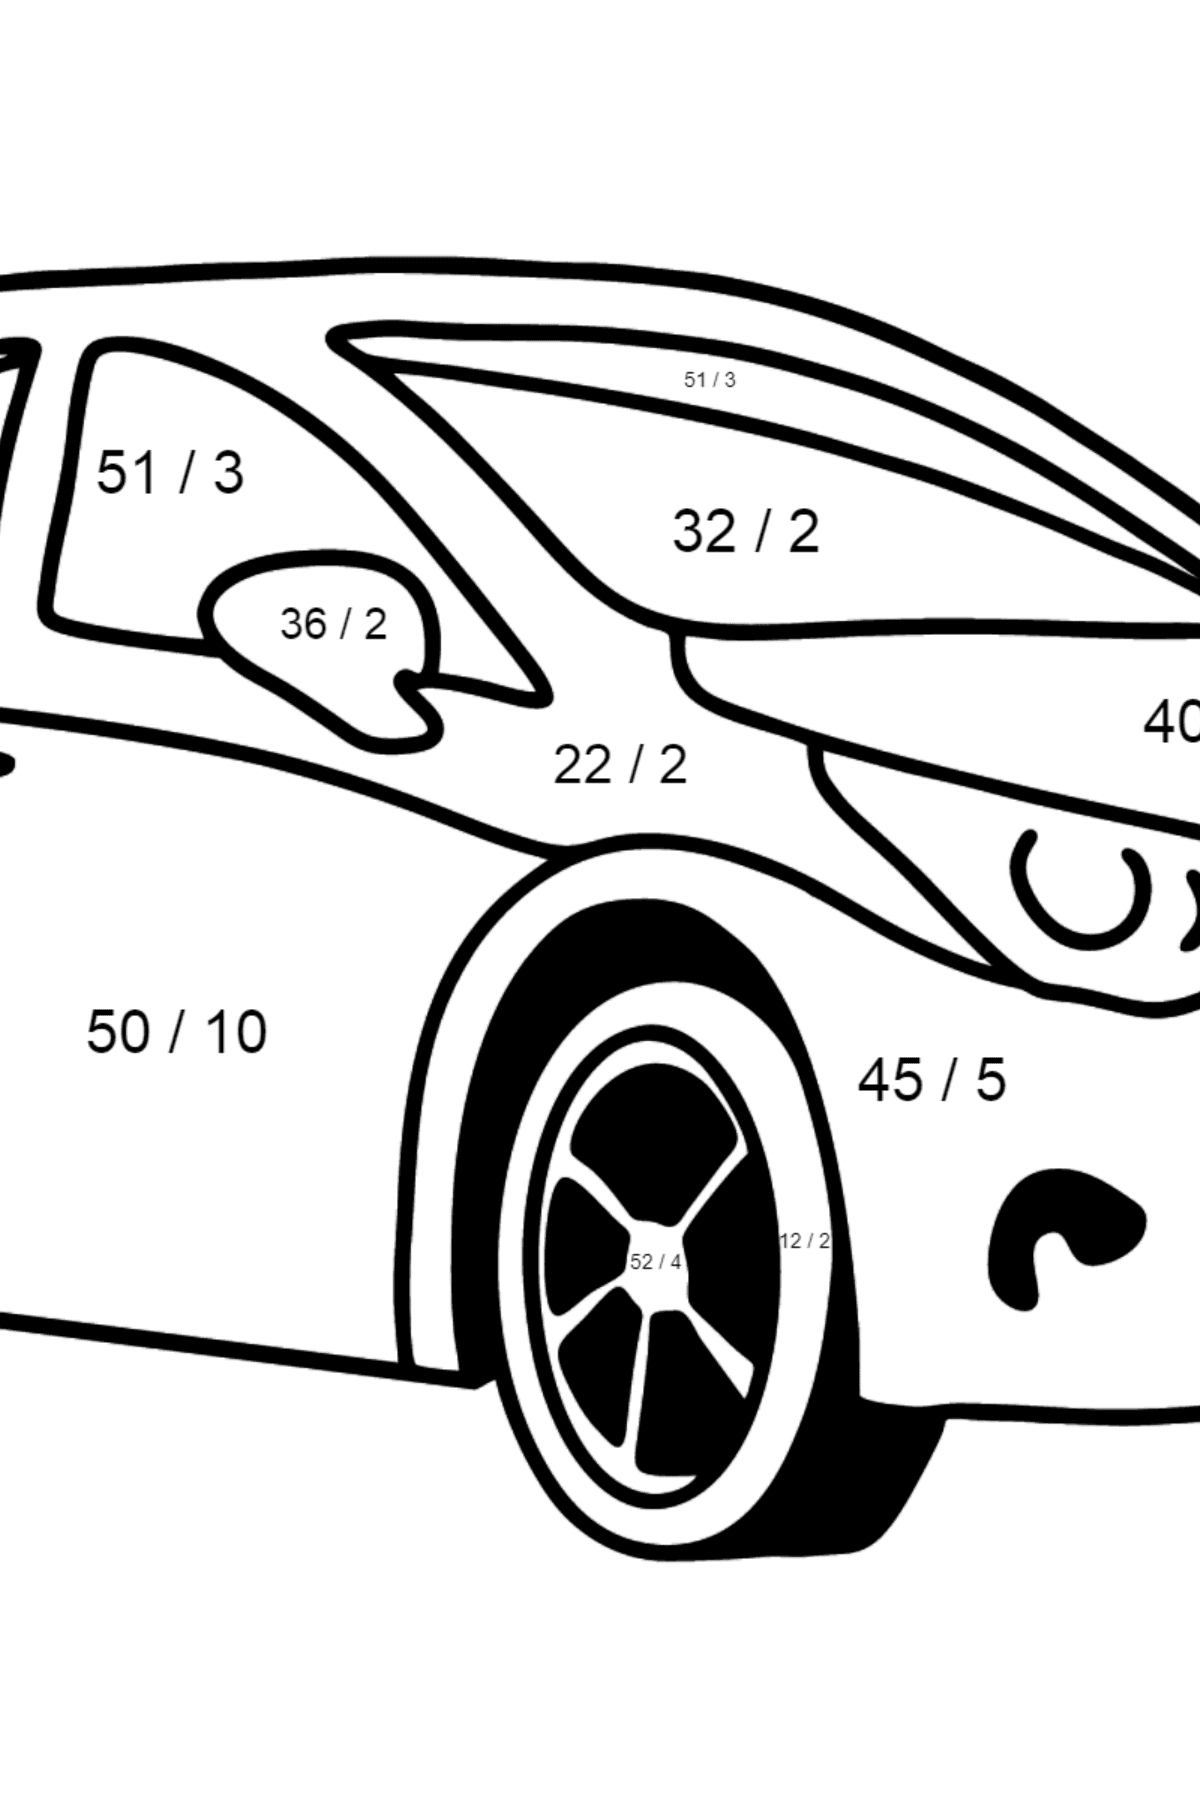 Toyota Avensis Car coloring page - Math Coloring - Division for Kids